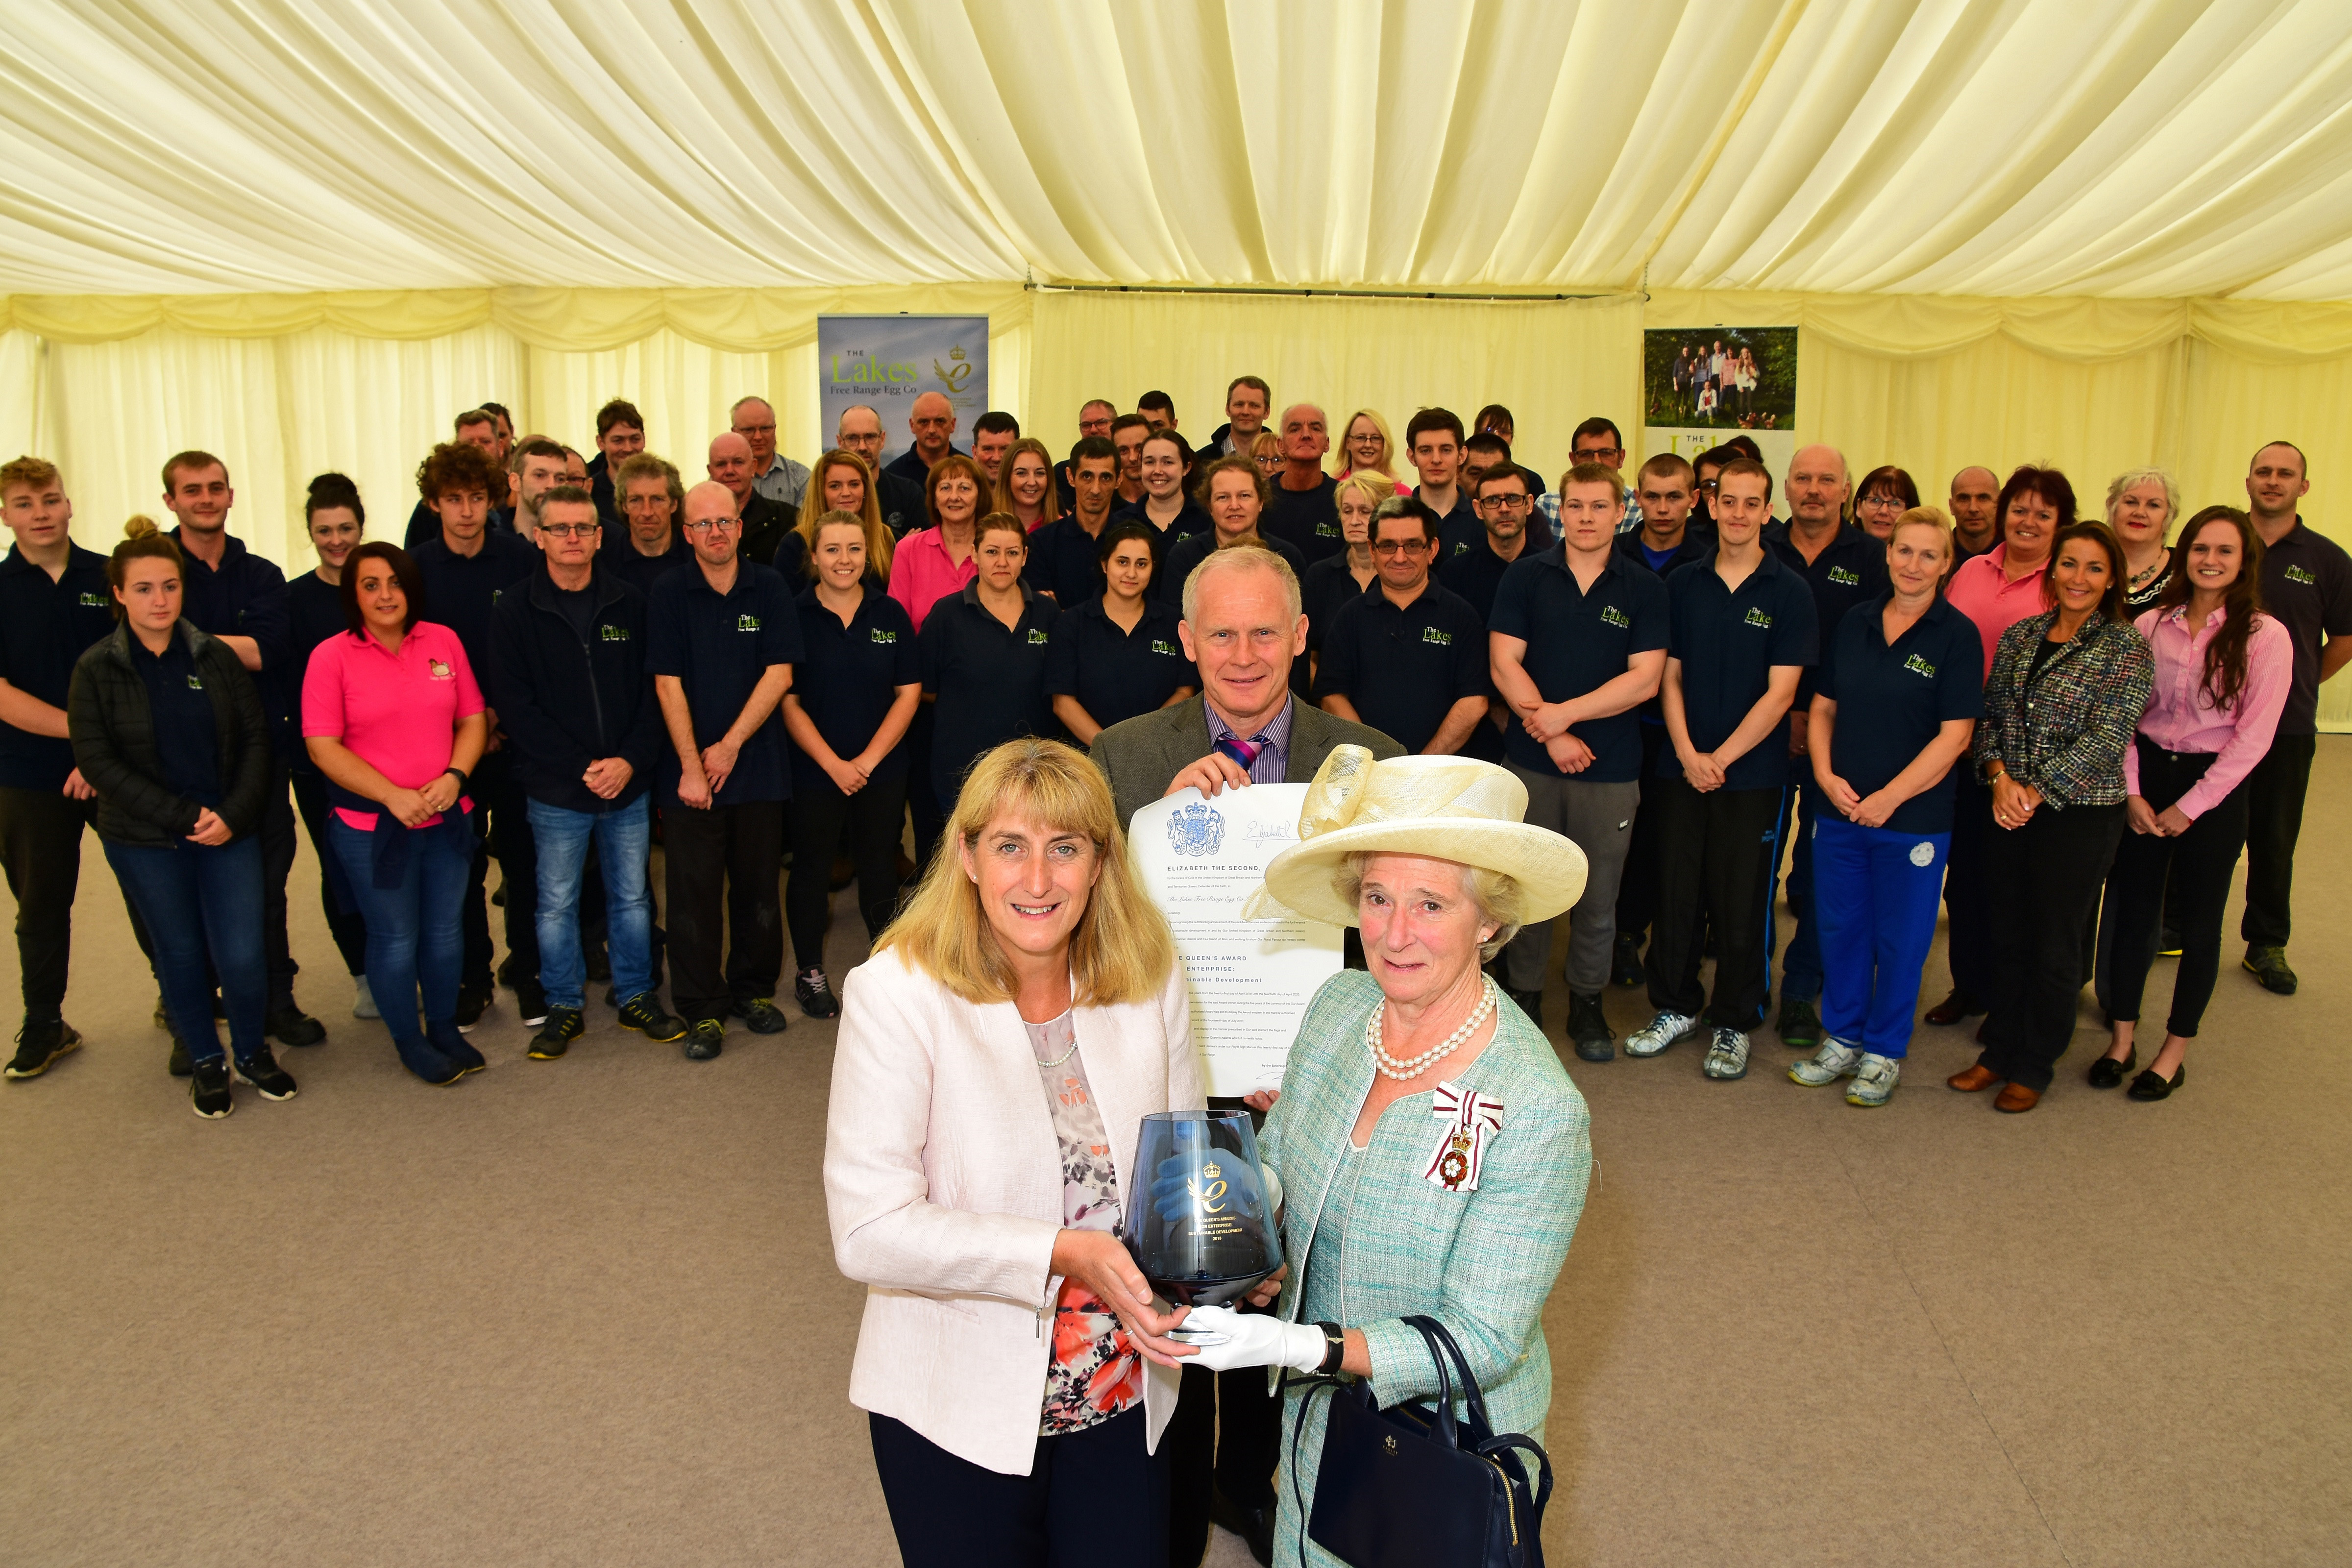 David & Helen Brass receive their award from Claire Hensman, Cumbria's Lord Lieutenant with staff helping celebrate.